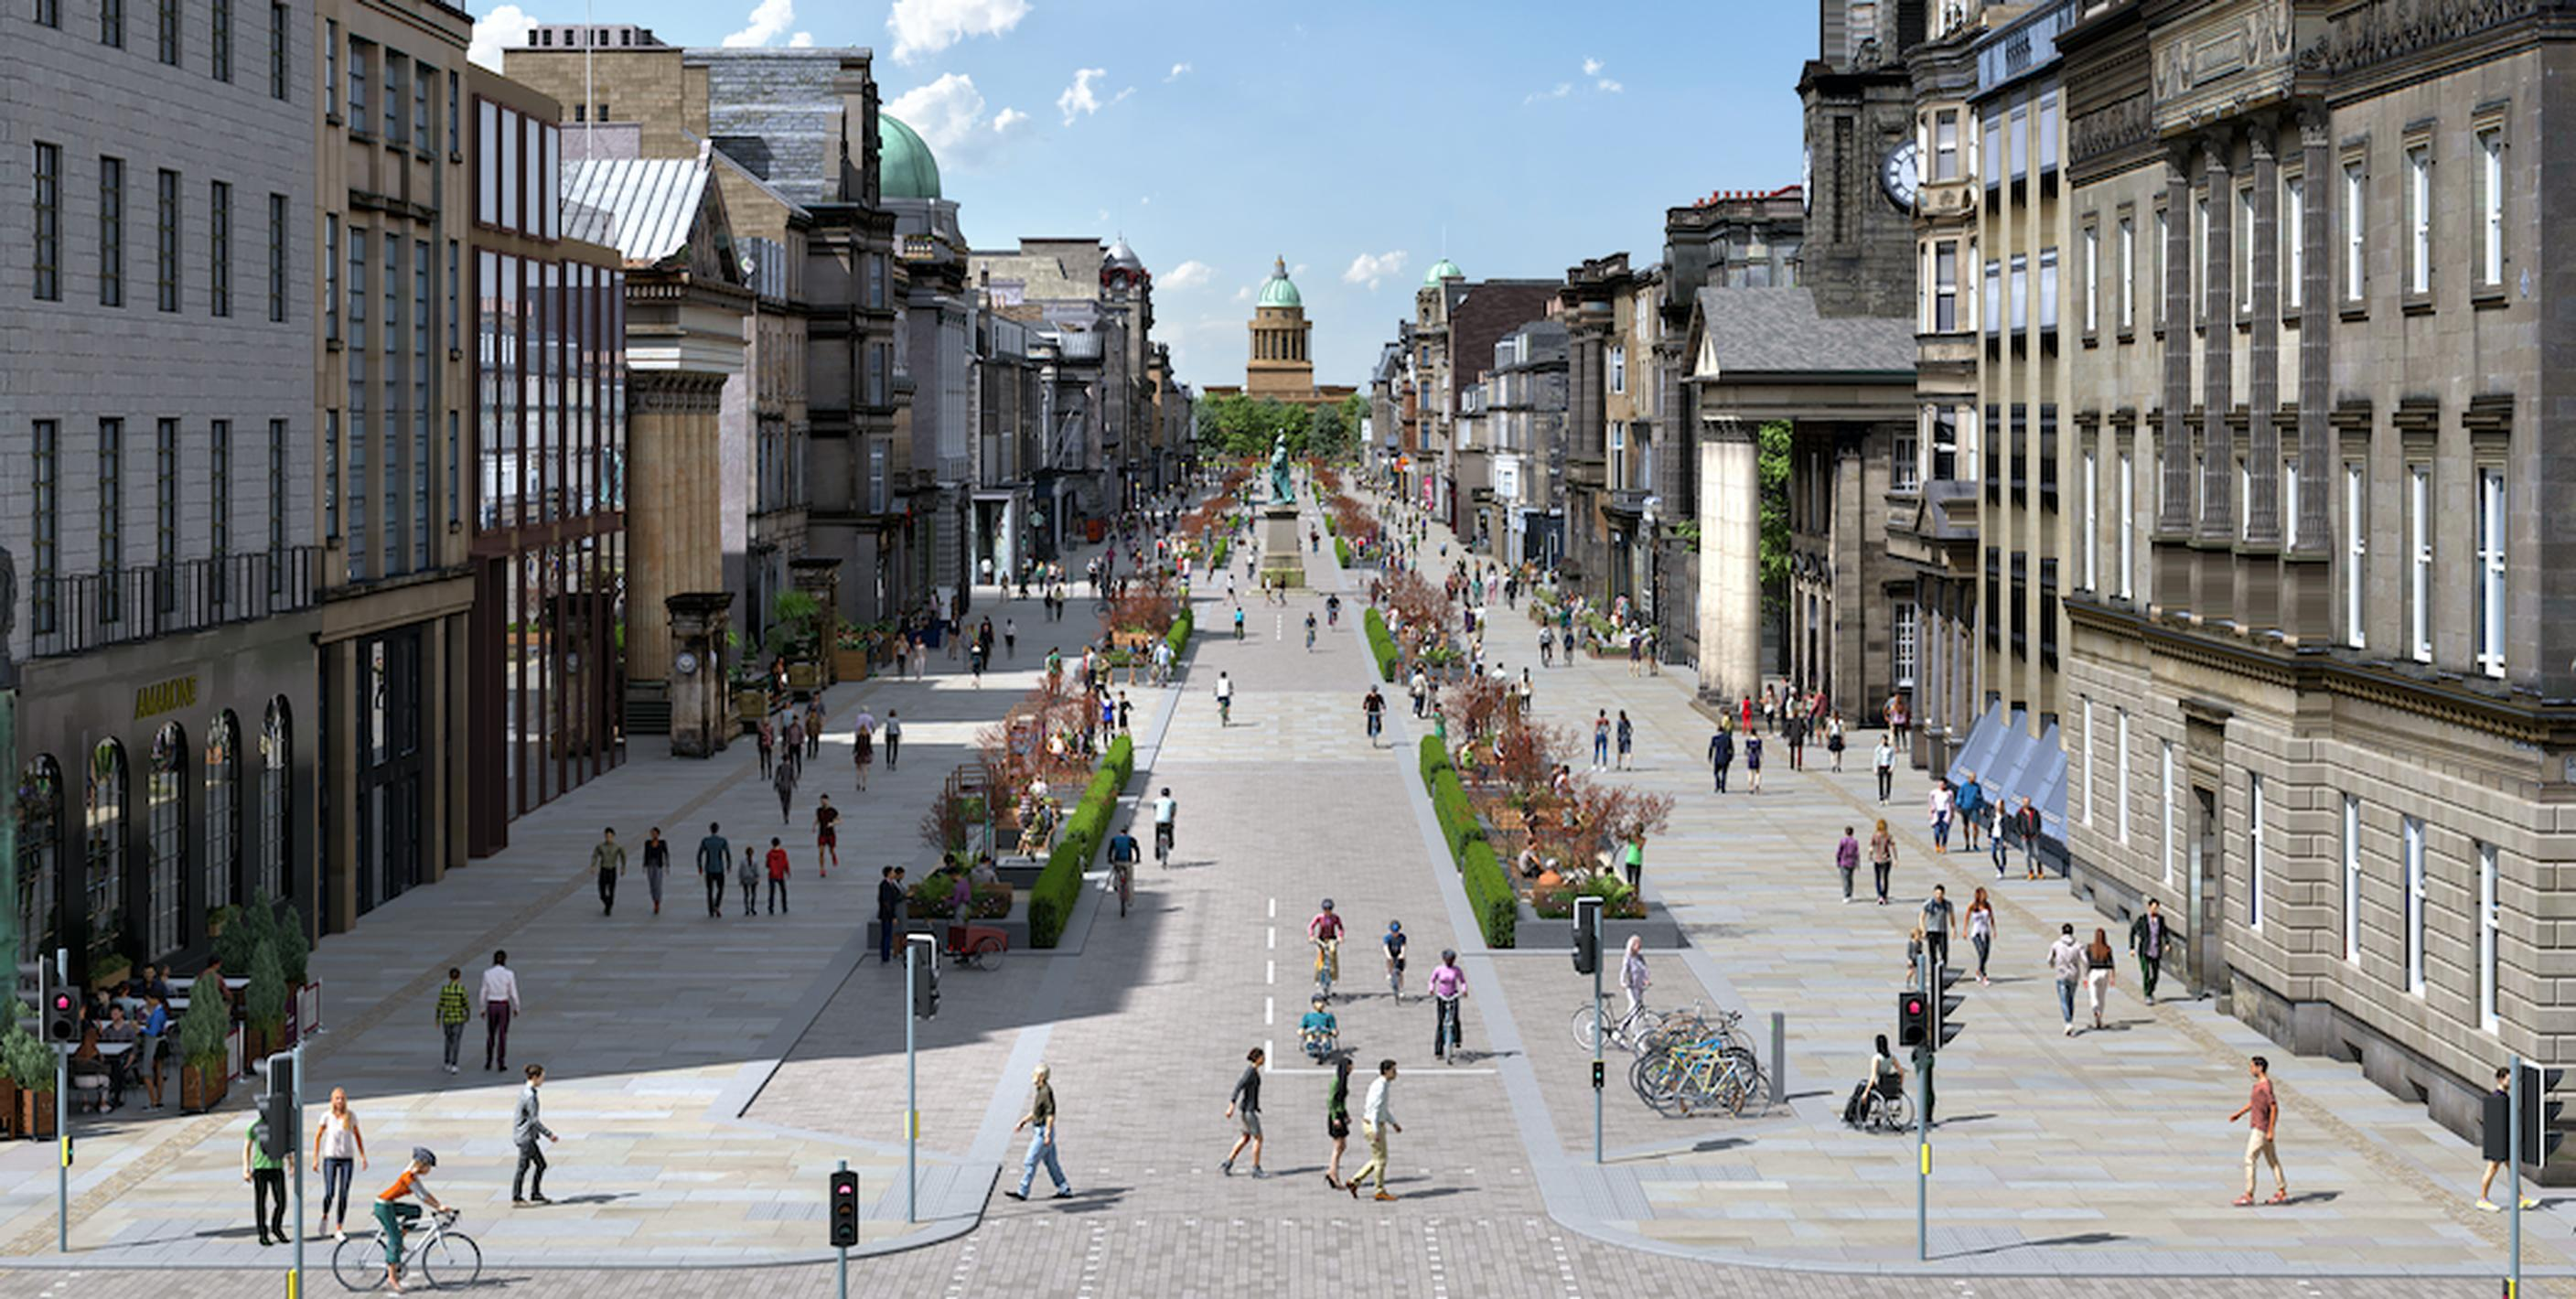 The final proposed concept designs for the transformation of George Street